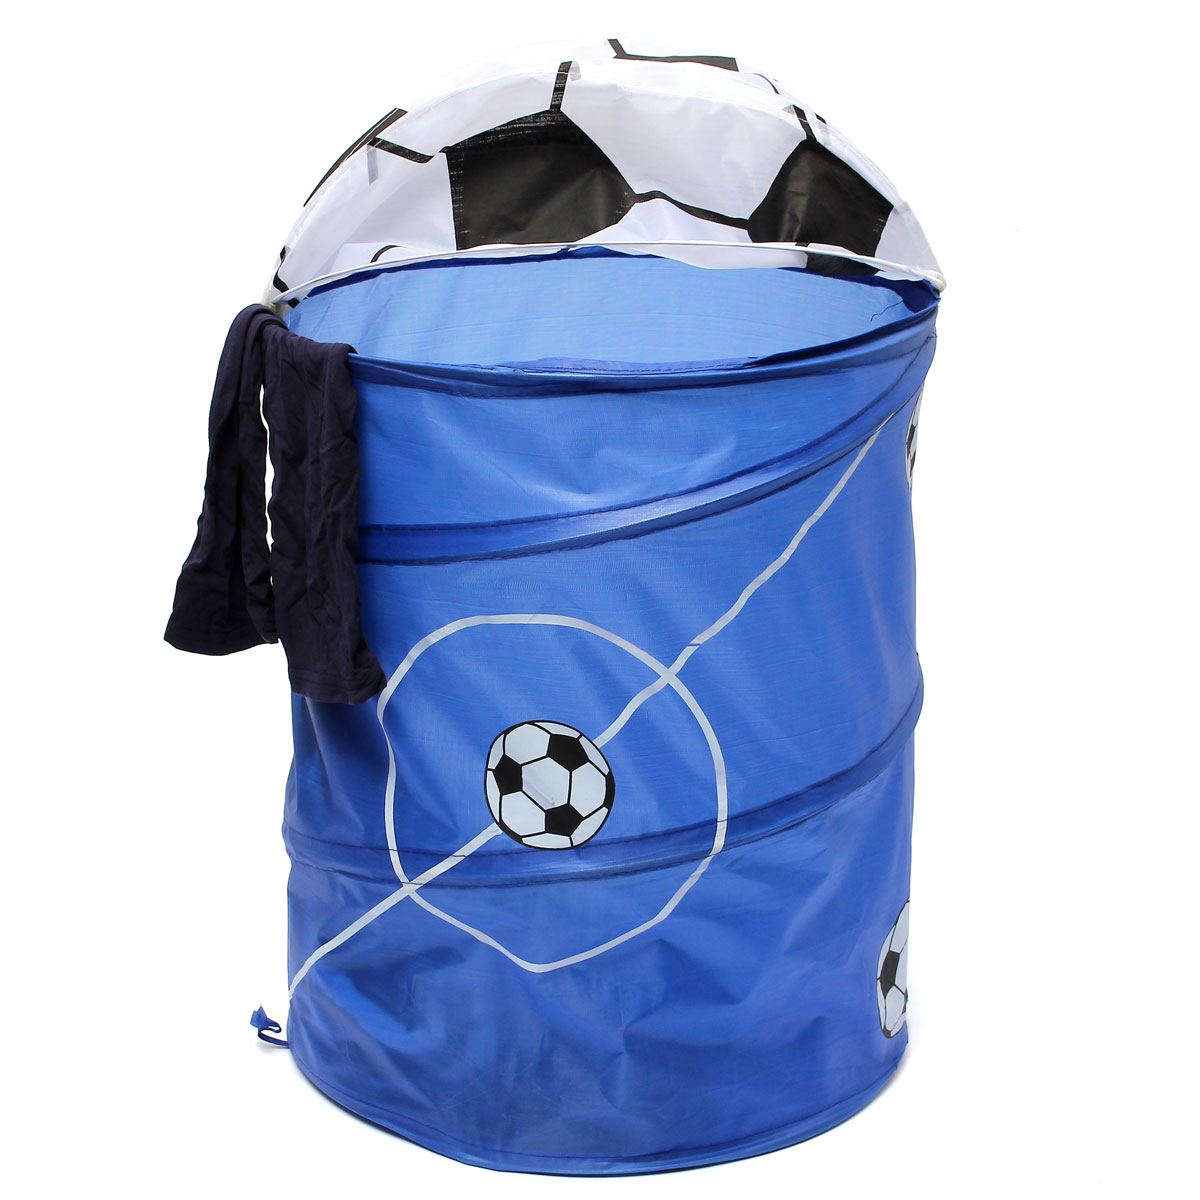 foldable pop up football washing clothes laundry bag. Black Bedroom Furniture Sets. Home Design Ideas